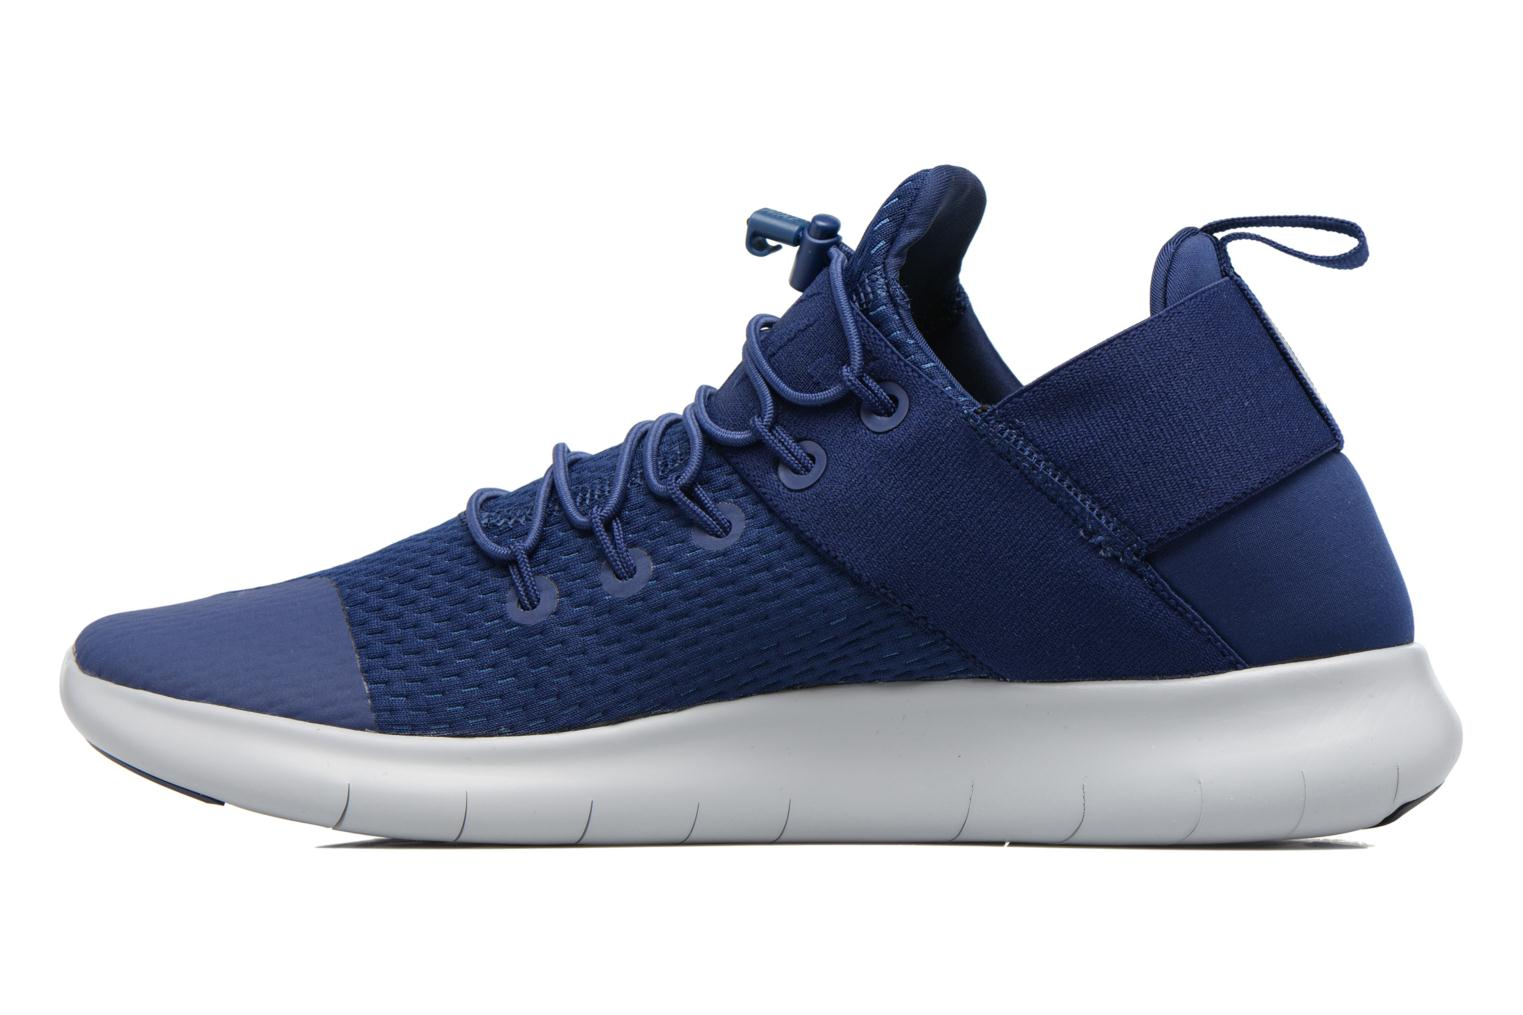 Nike Free Rn Cmtr 2017 Binary Blue/Coastal Blue-Wolf Grey